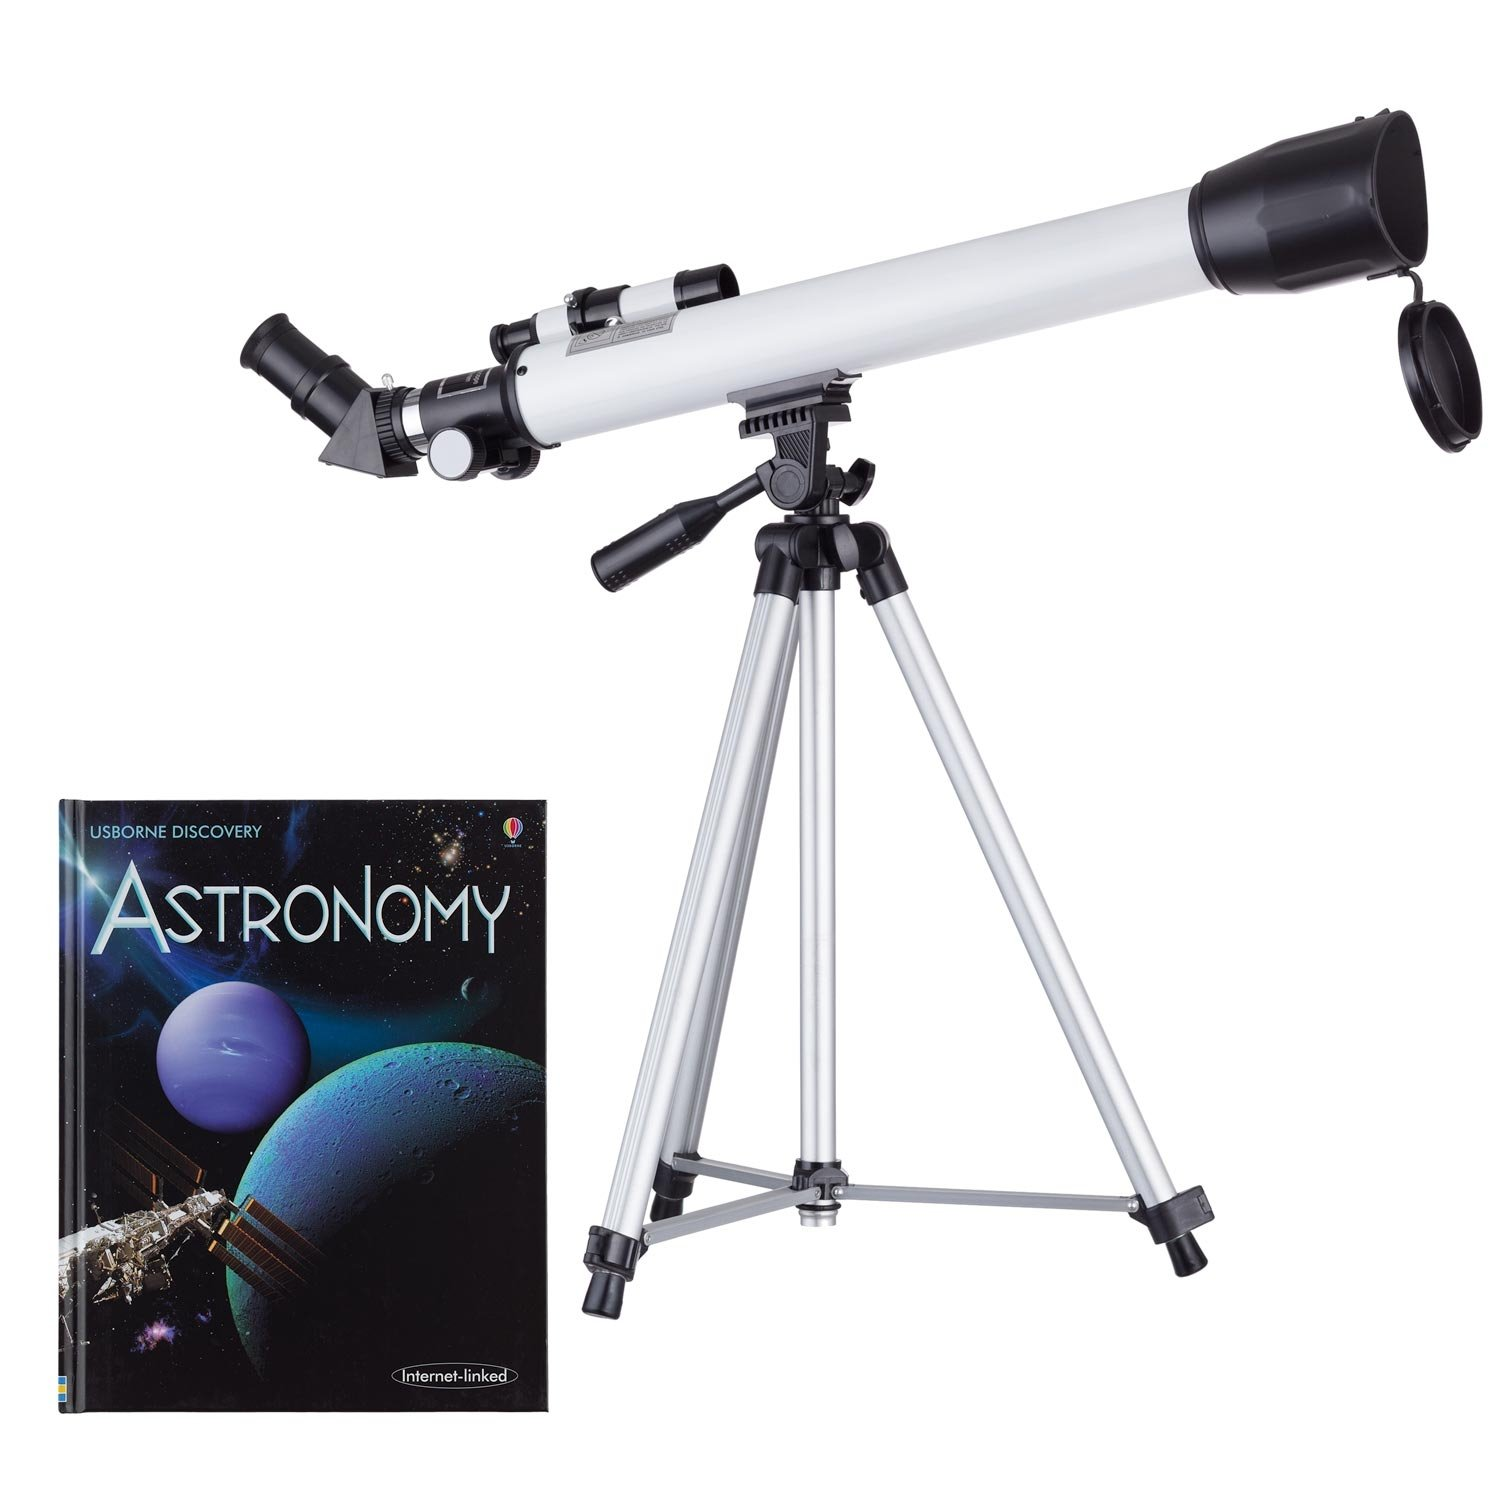 IQCrew's AmScope-Kids 30-180X 600x50mm Telescope and Astronomy Book by iQcrew